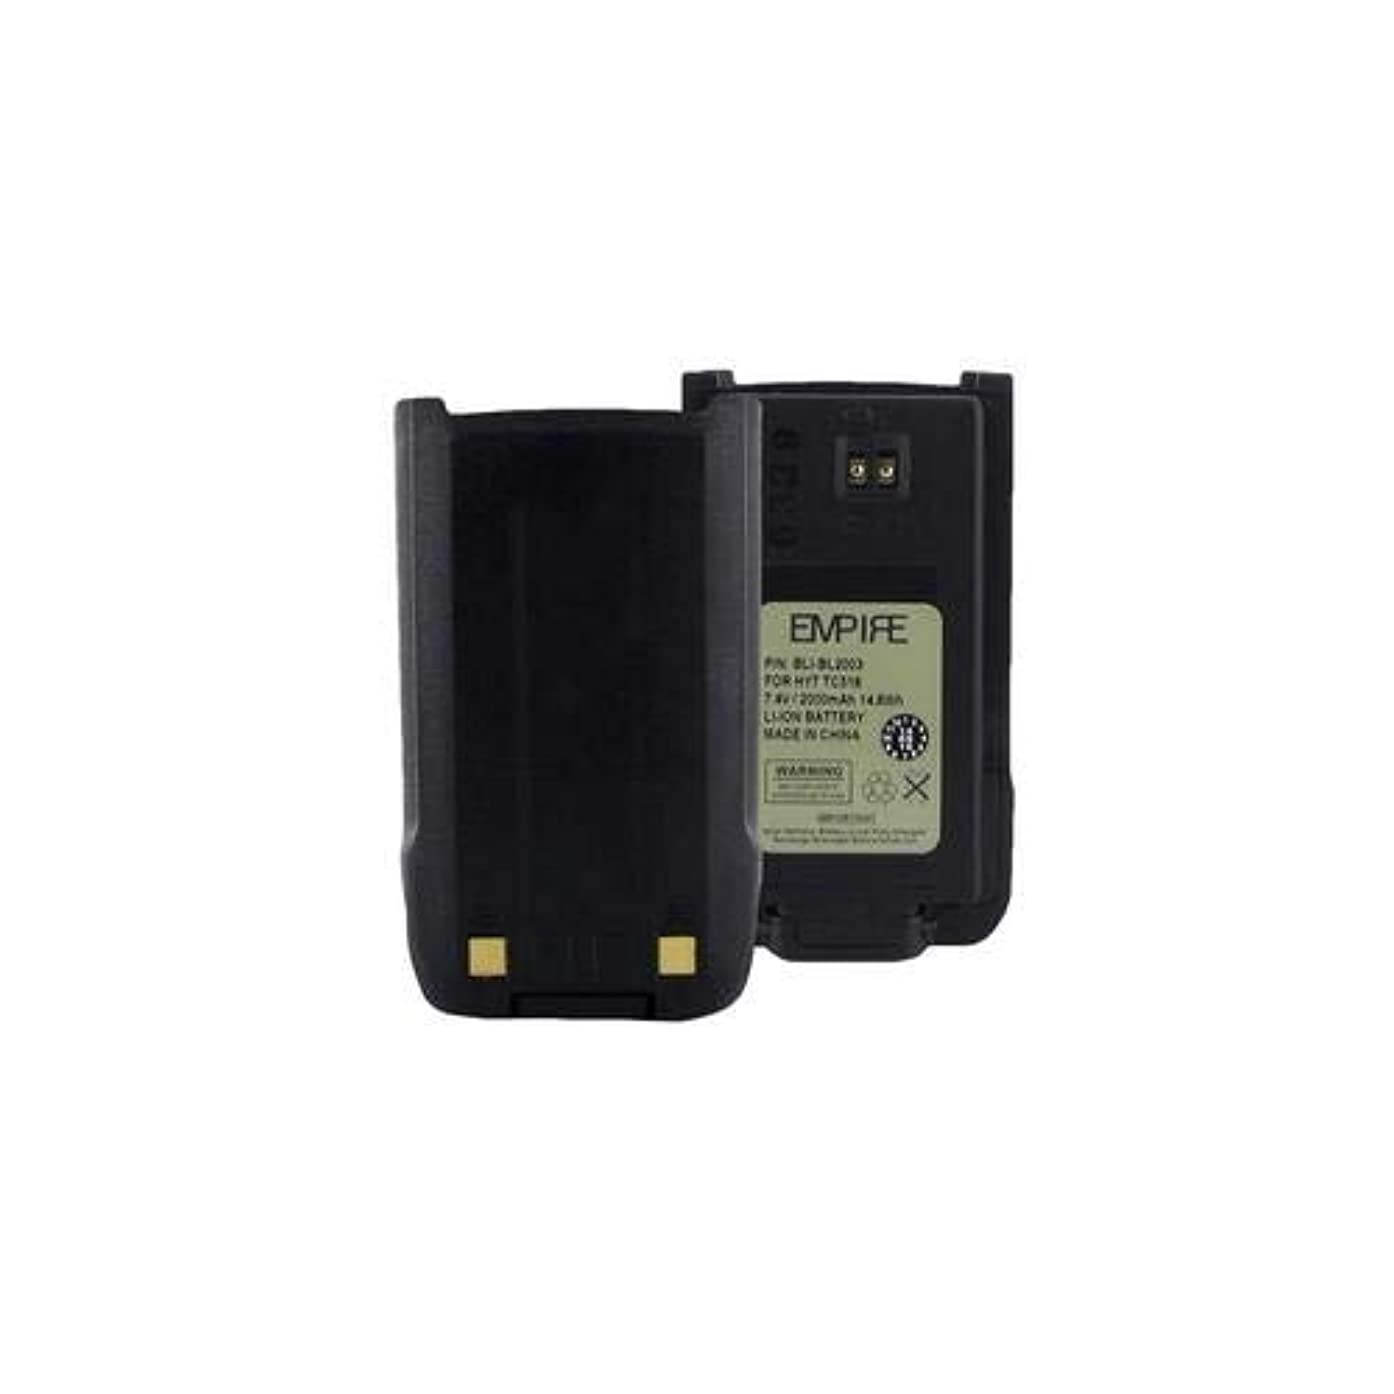 HYT TC518V 2-Way Radio Battery (Li-Ion 7.4V 2000mAh) Rechargeable Battery - Replacement for HYT BL2003 Battery